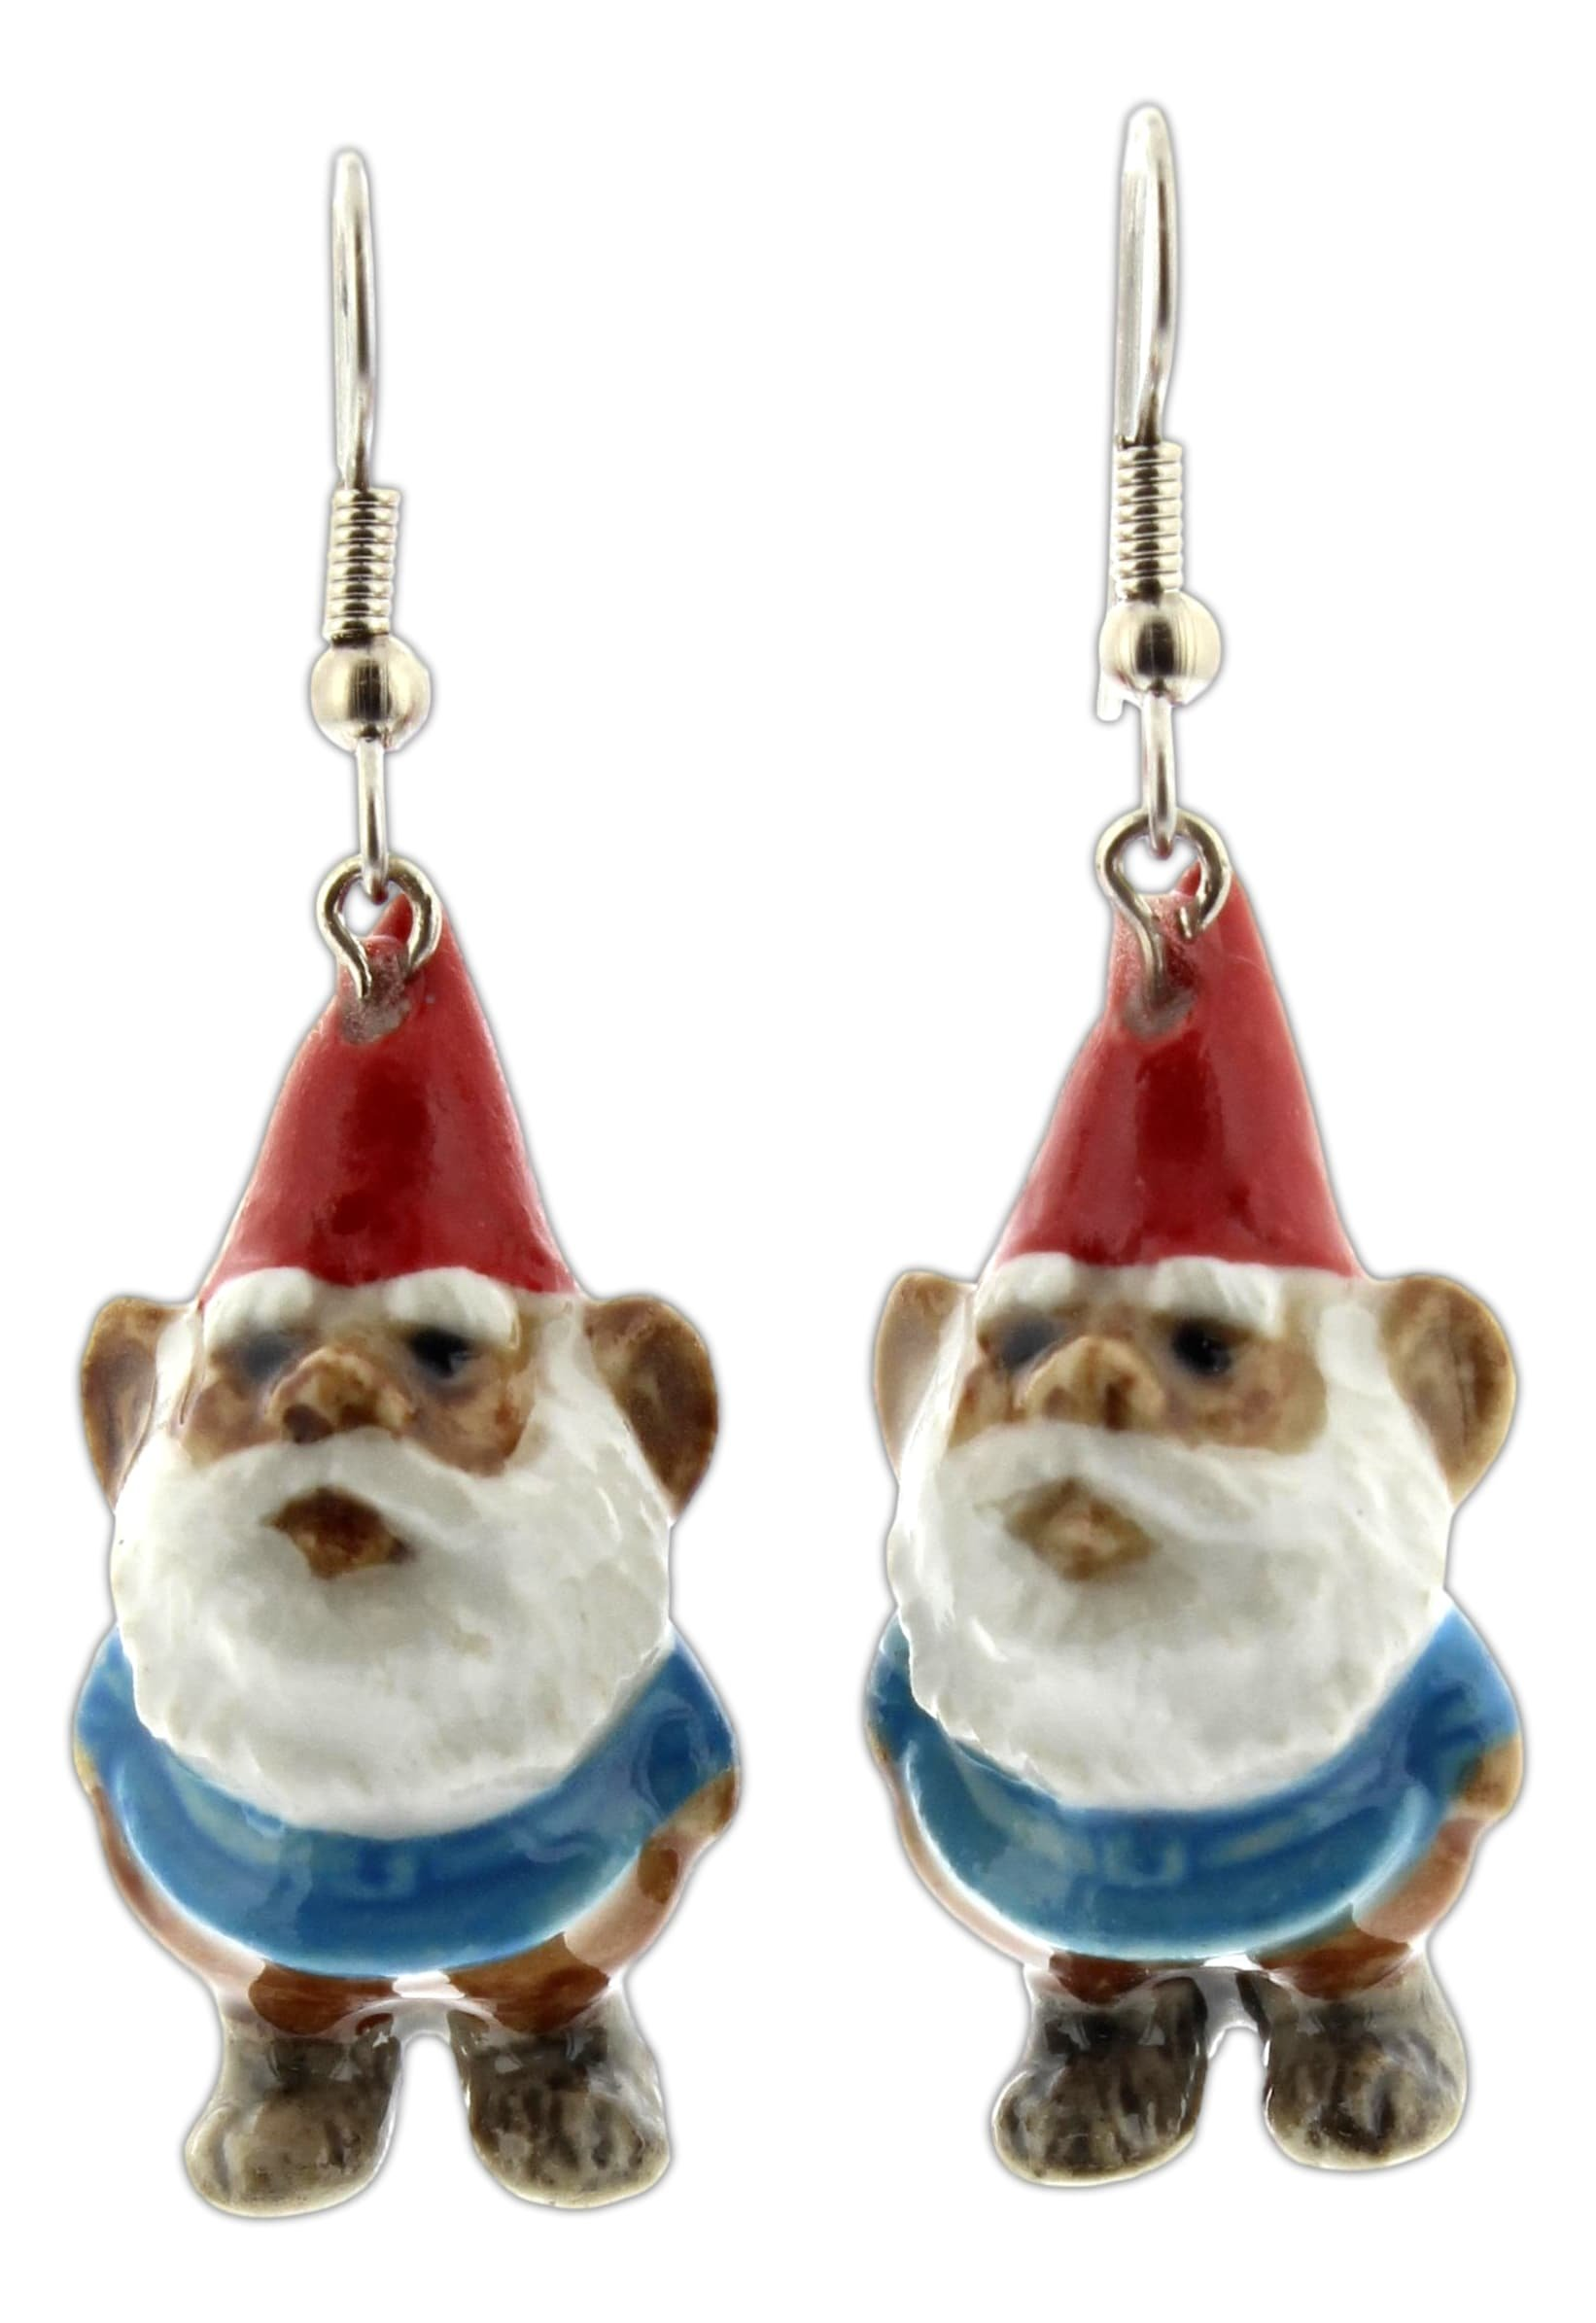 Little Critterz 1.5'' Hand Painted Porcelain Gnome Dangle Earrings on Fish Hook Backs